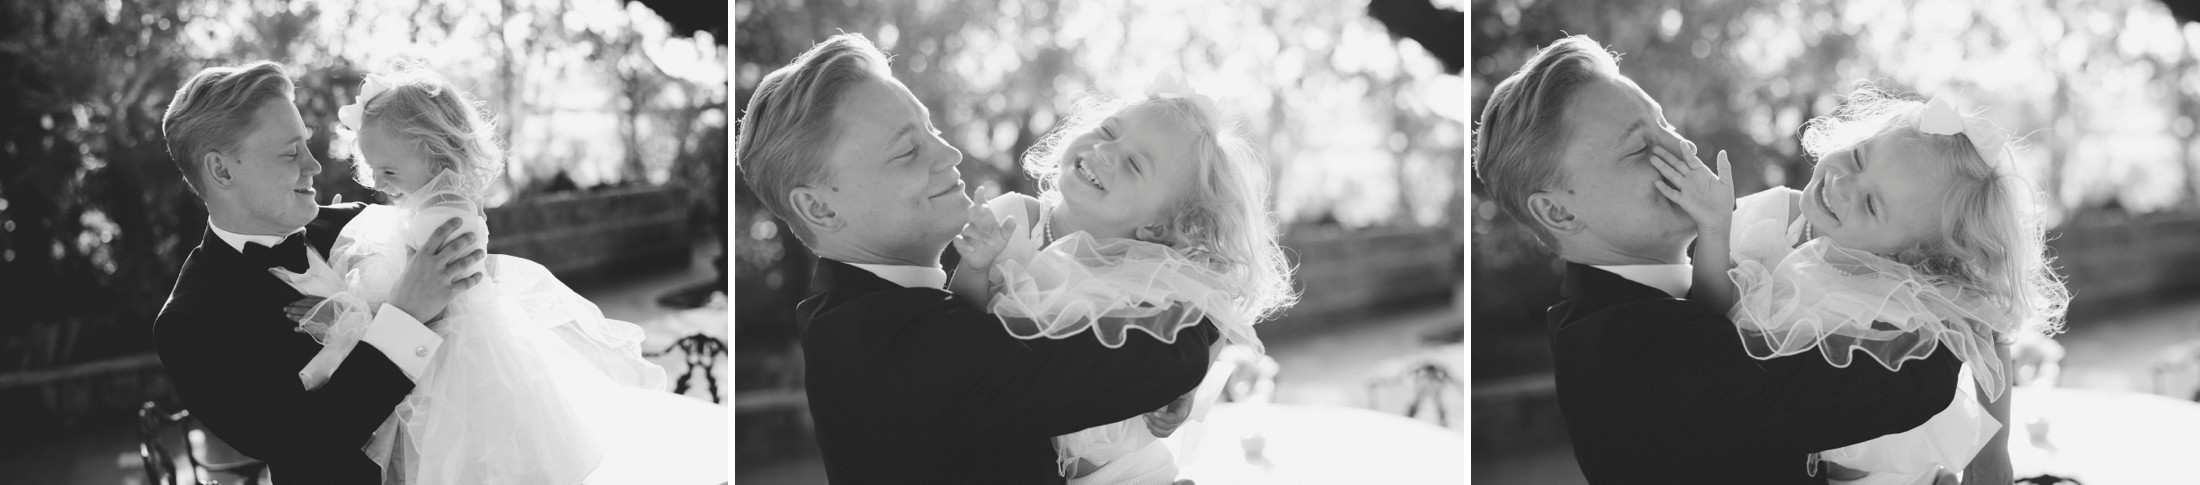 black and white collage of the groom with his daughter